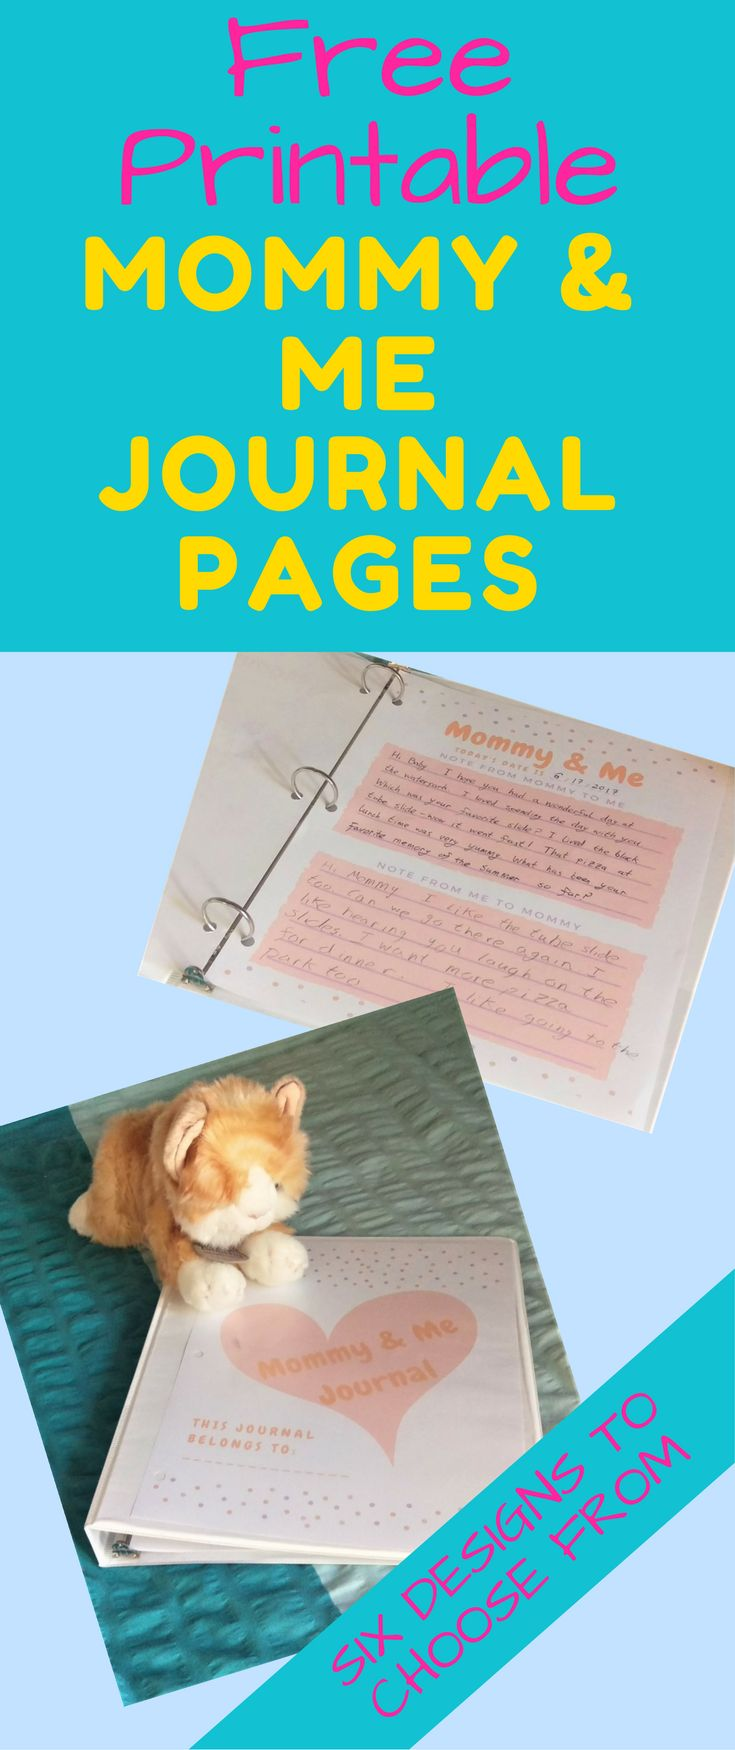 Improve Your Child's Behavior with A Mommy & Me Journal. I didn't believe it would make that much difference until I tried it - WOW! My daughter is a different child!